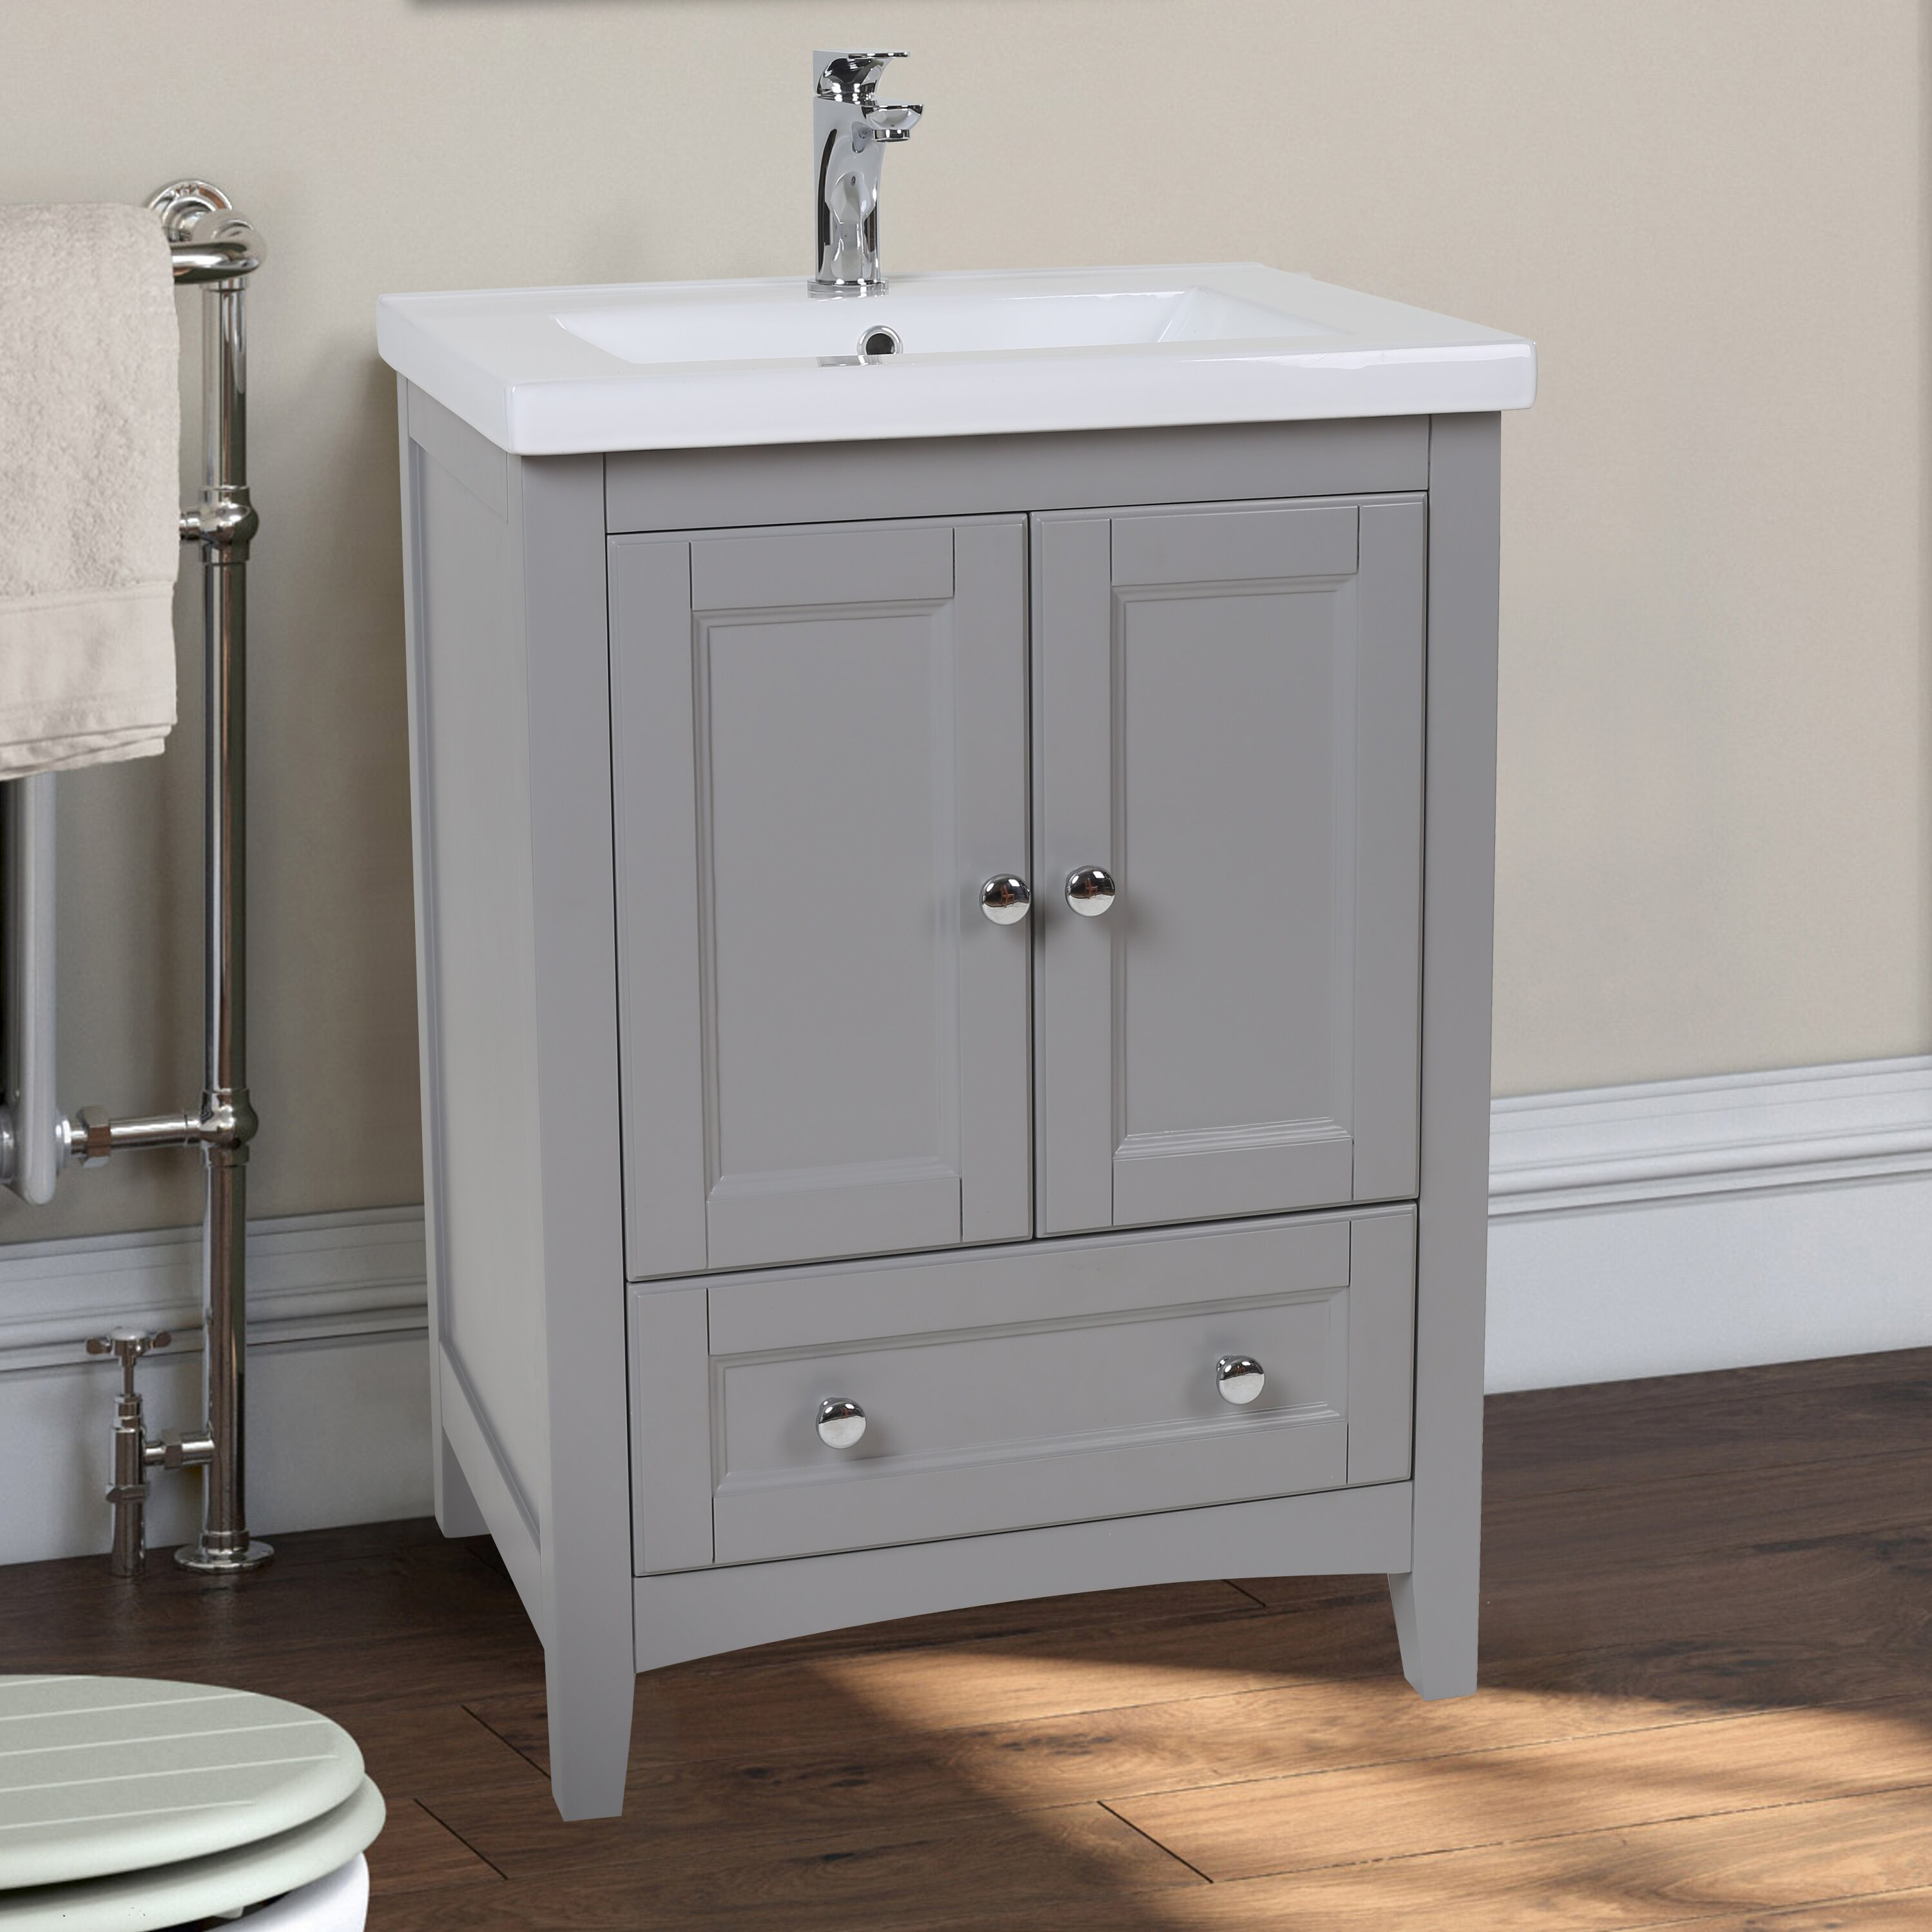 Elegant lighting danville 24 single bathroom vanity set for Restroom vanity